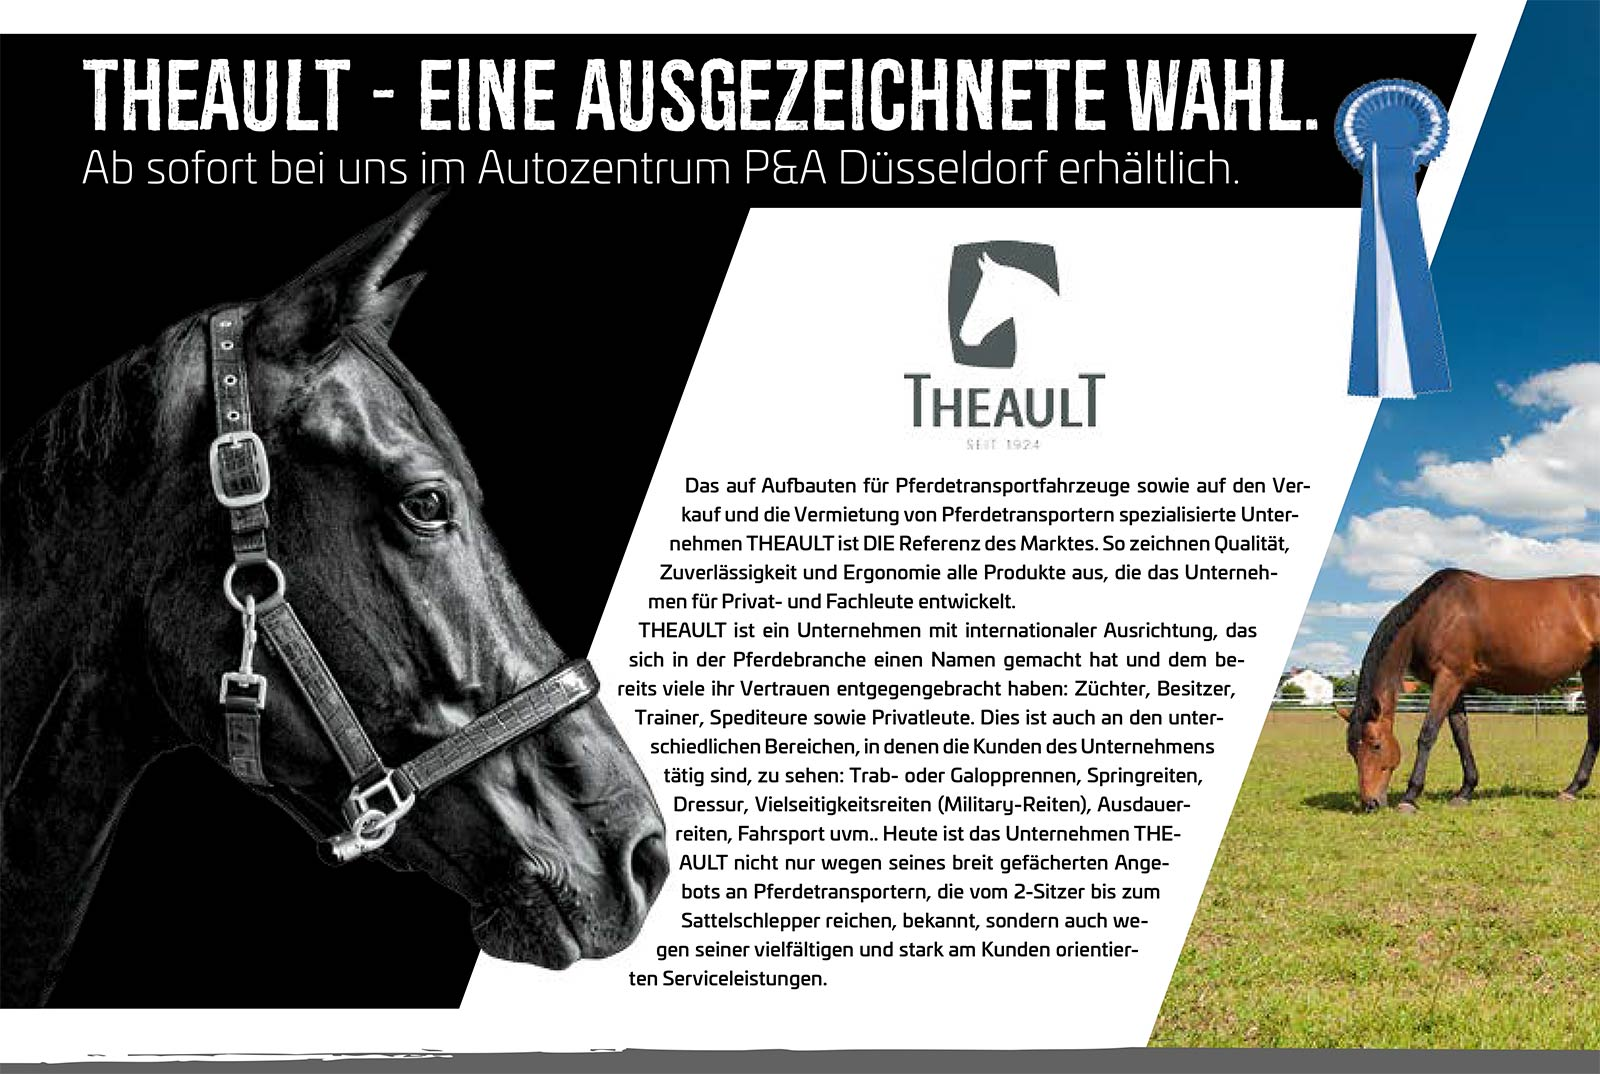 Theault in Düsseldorf